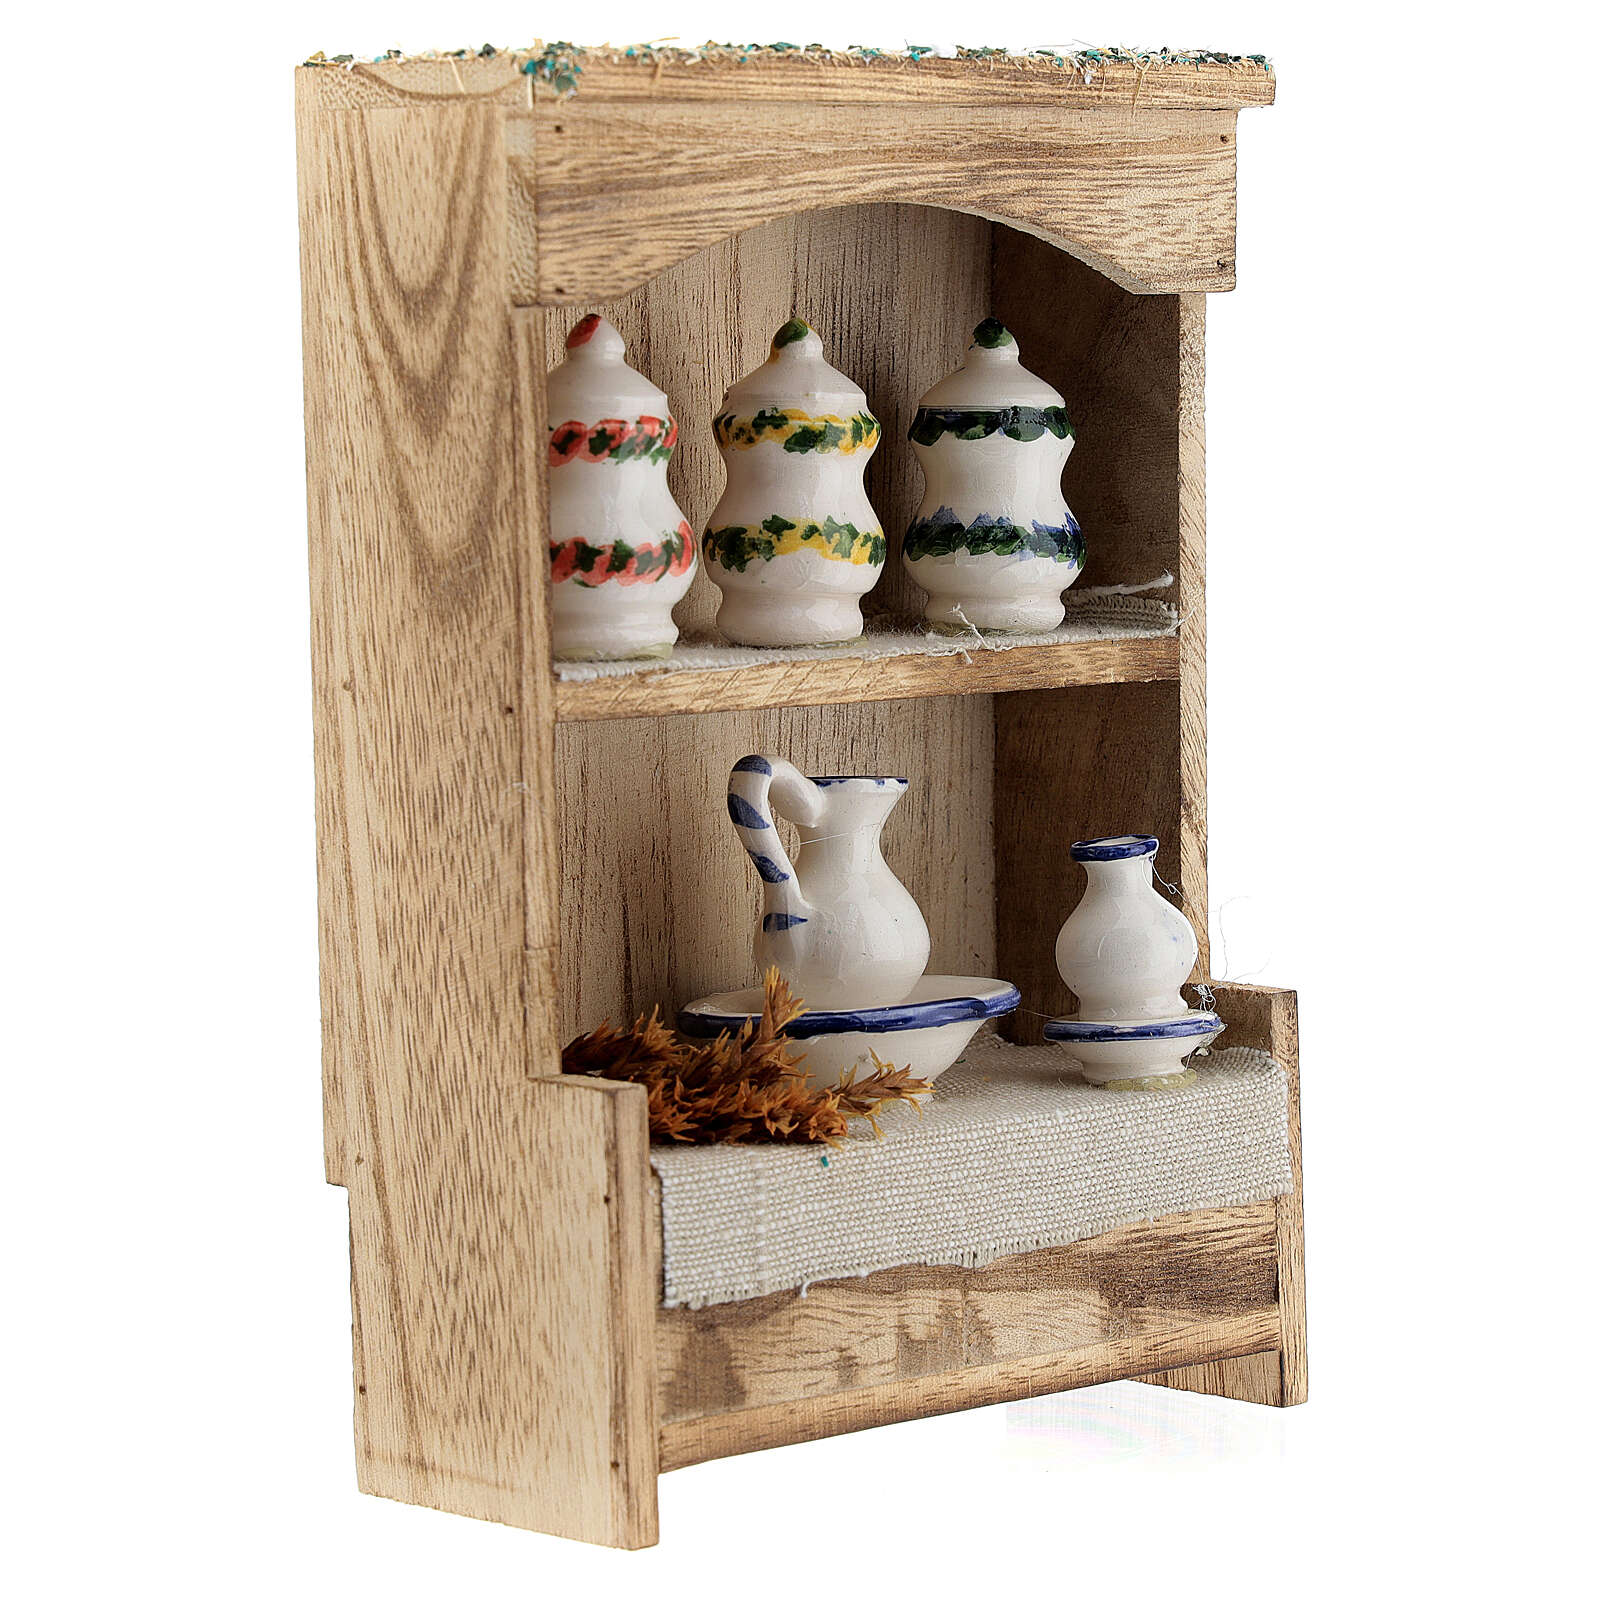 Cupboard with chinaware 15x10x4 cm for Nativity Scene with 12-14 cm figurines 4